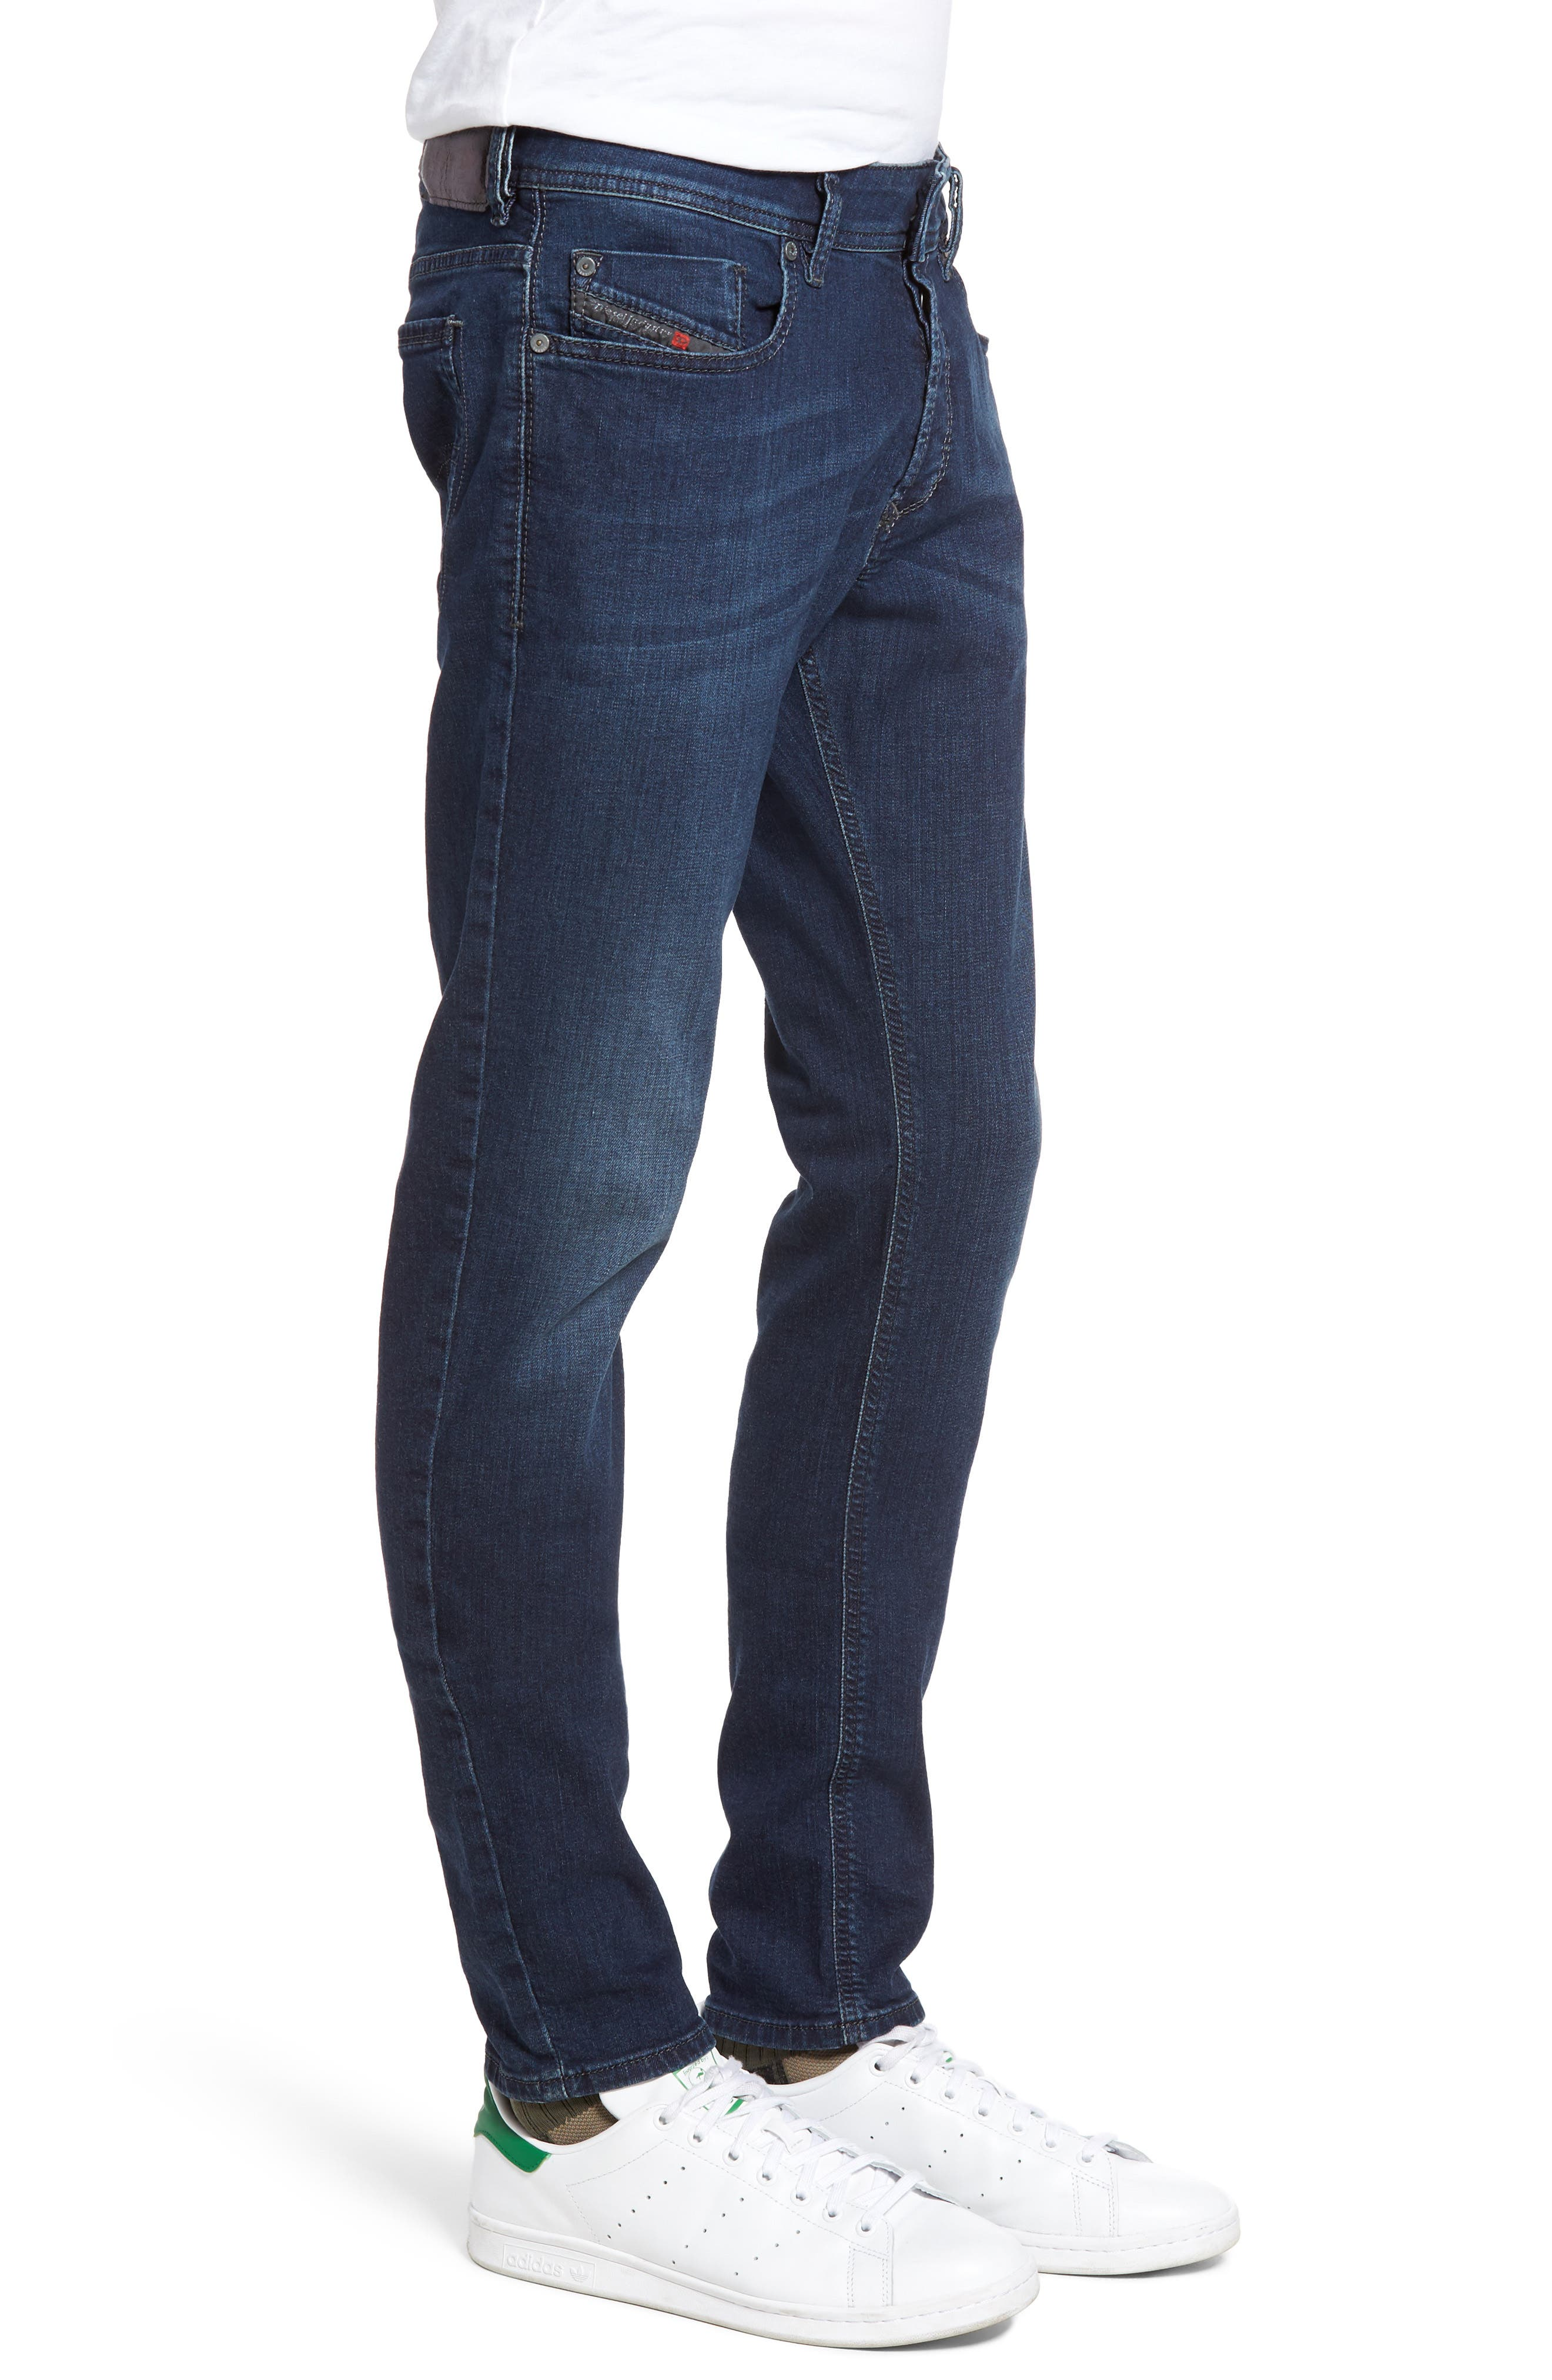 Sleenker Skinny Fit Jeans,                             Alternate thumbnail 3, color,                             400